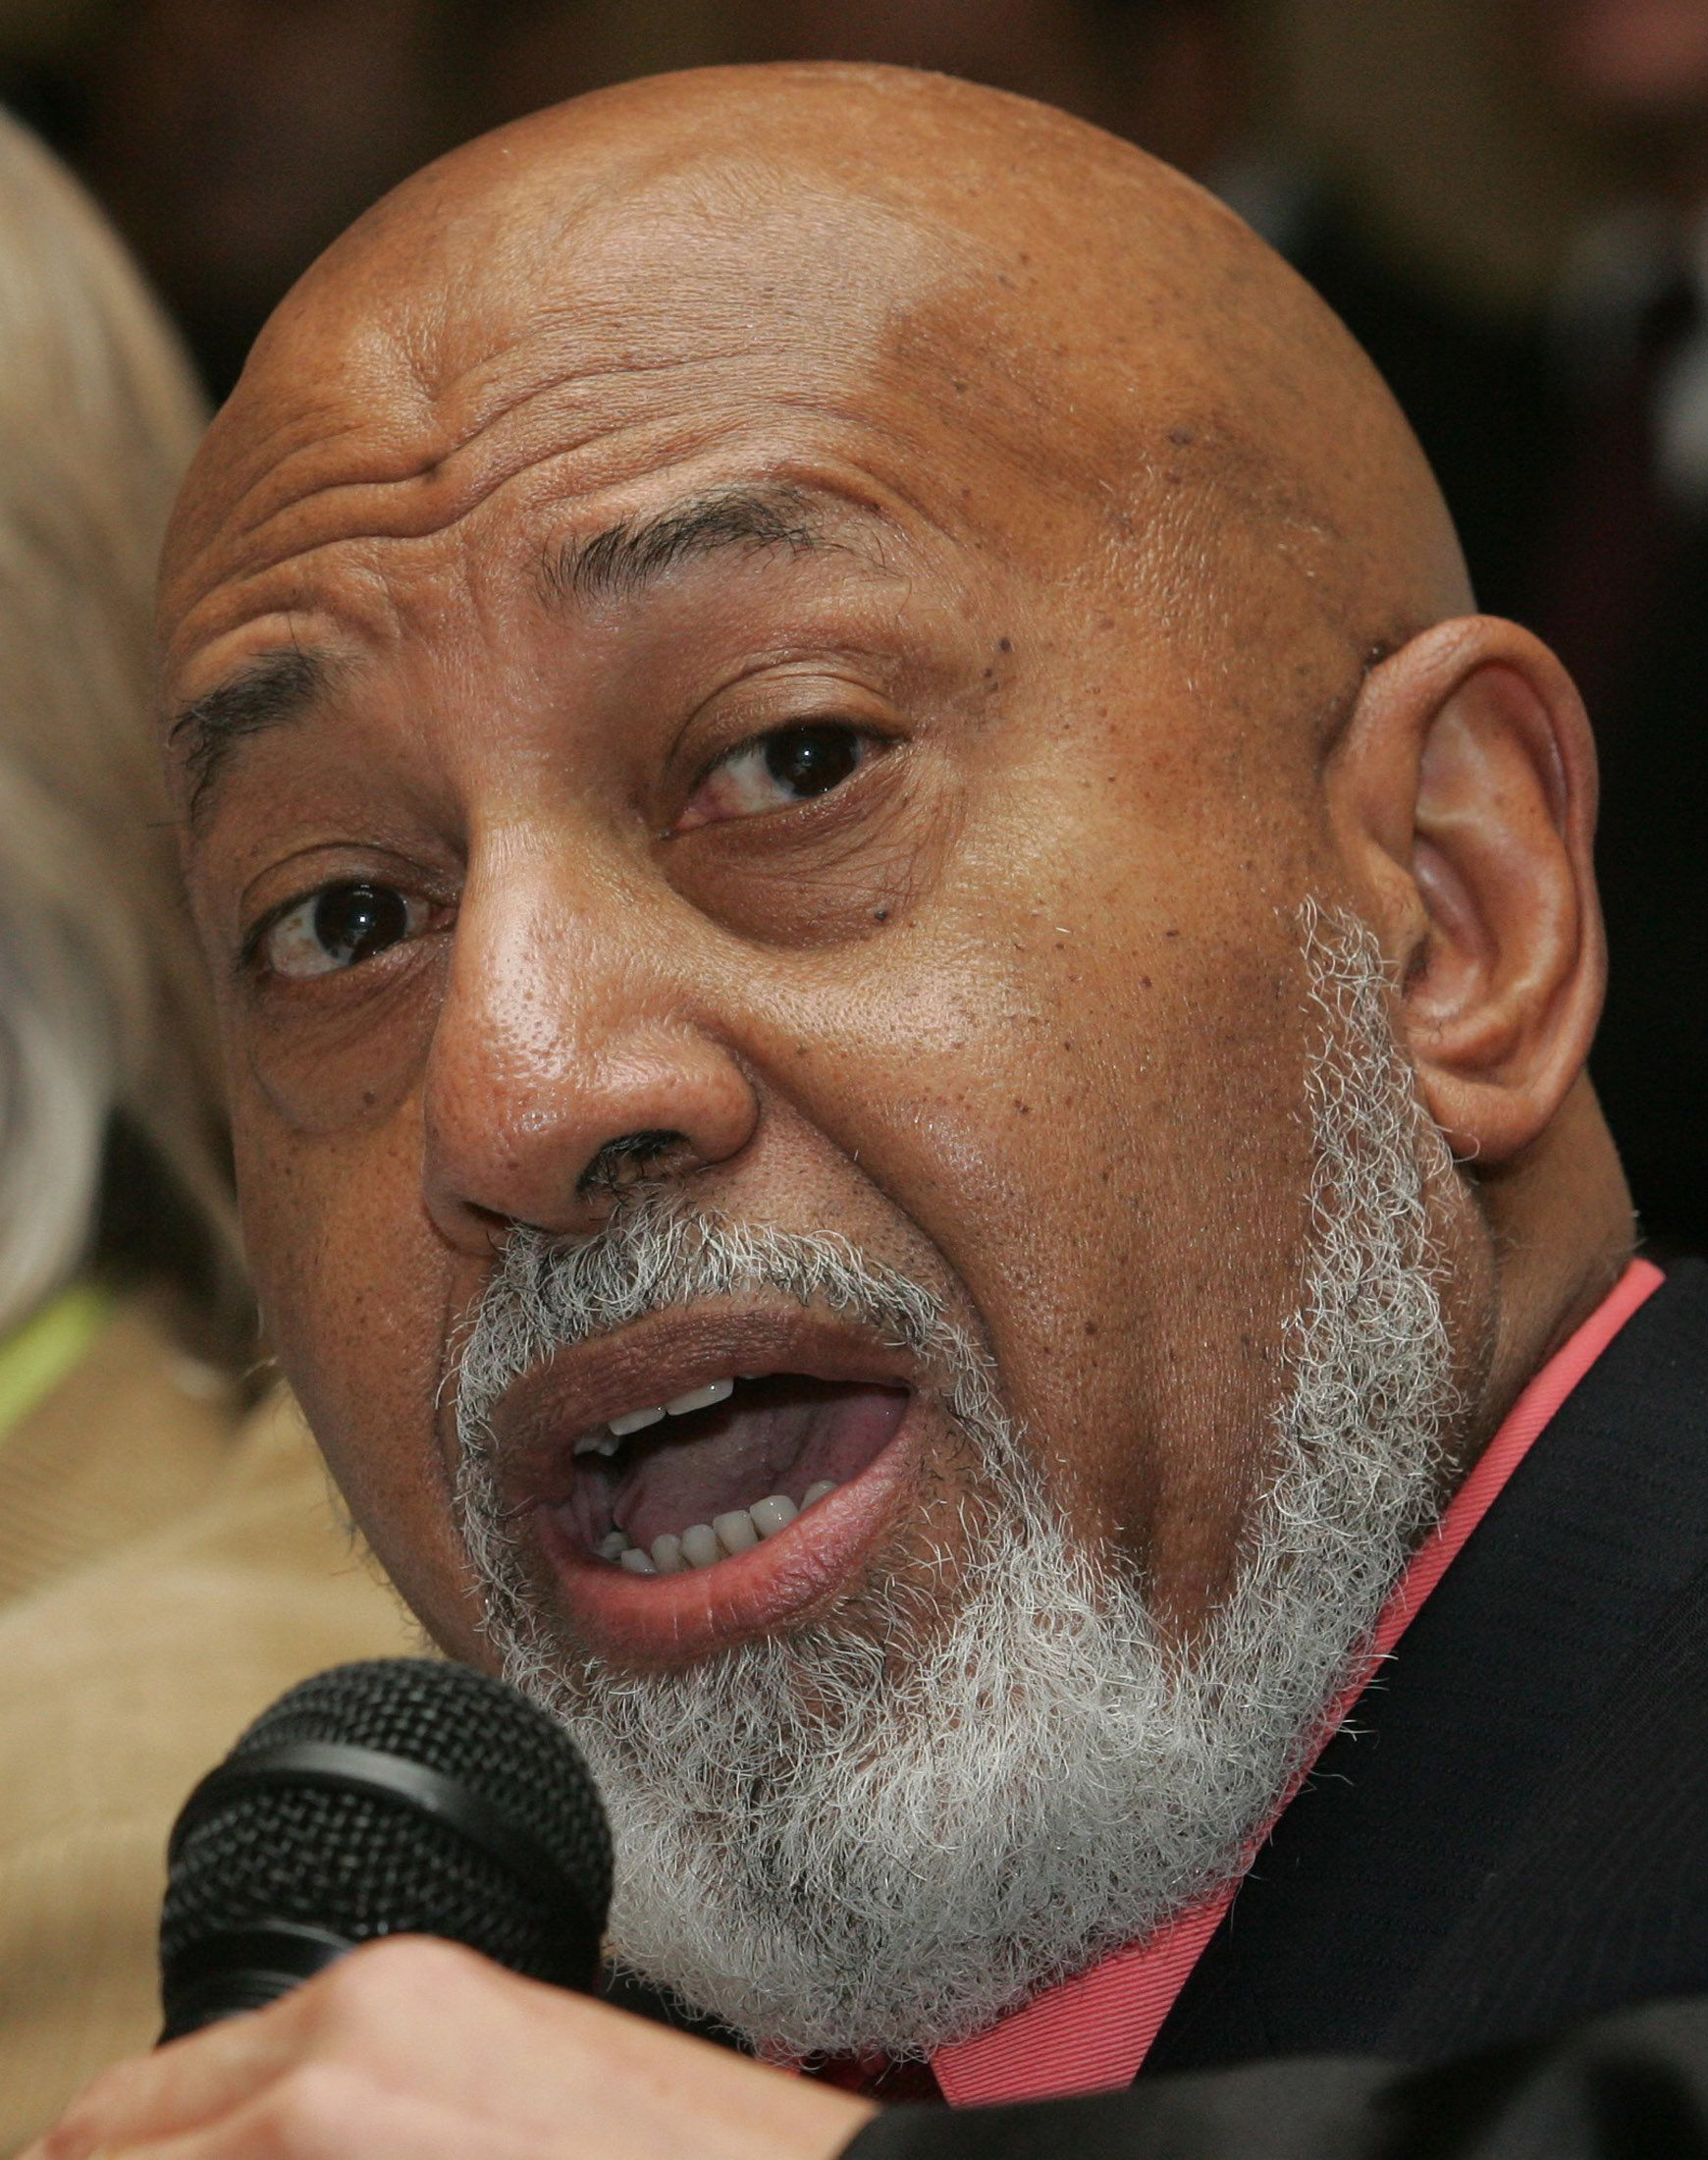 Florida Democratic Rep Alcee Hastings insists he had no idea that taxpayer funds were used to settle a sex harassment lawsuit against him